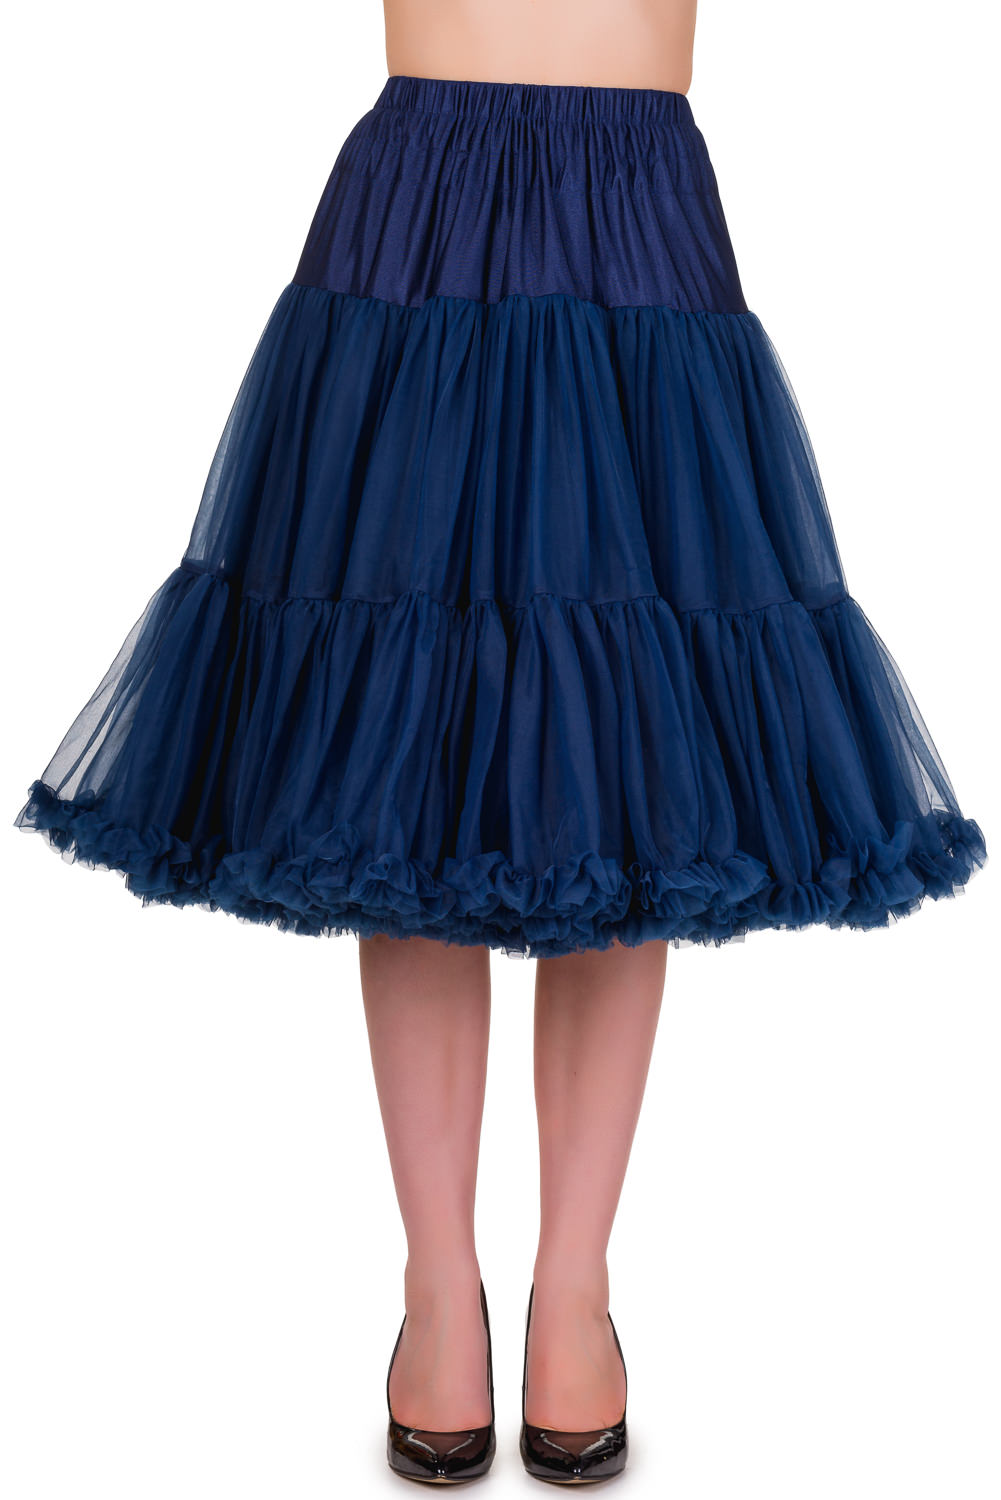 Banned Retro 50s Lizzy Lifeforms Navy Petticoat